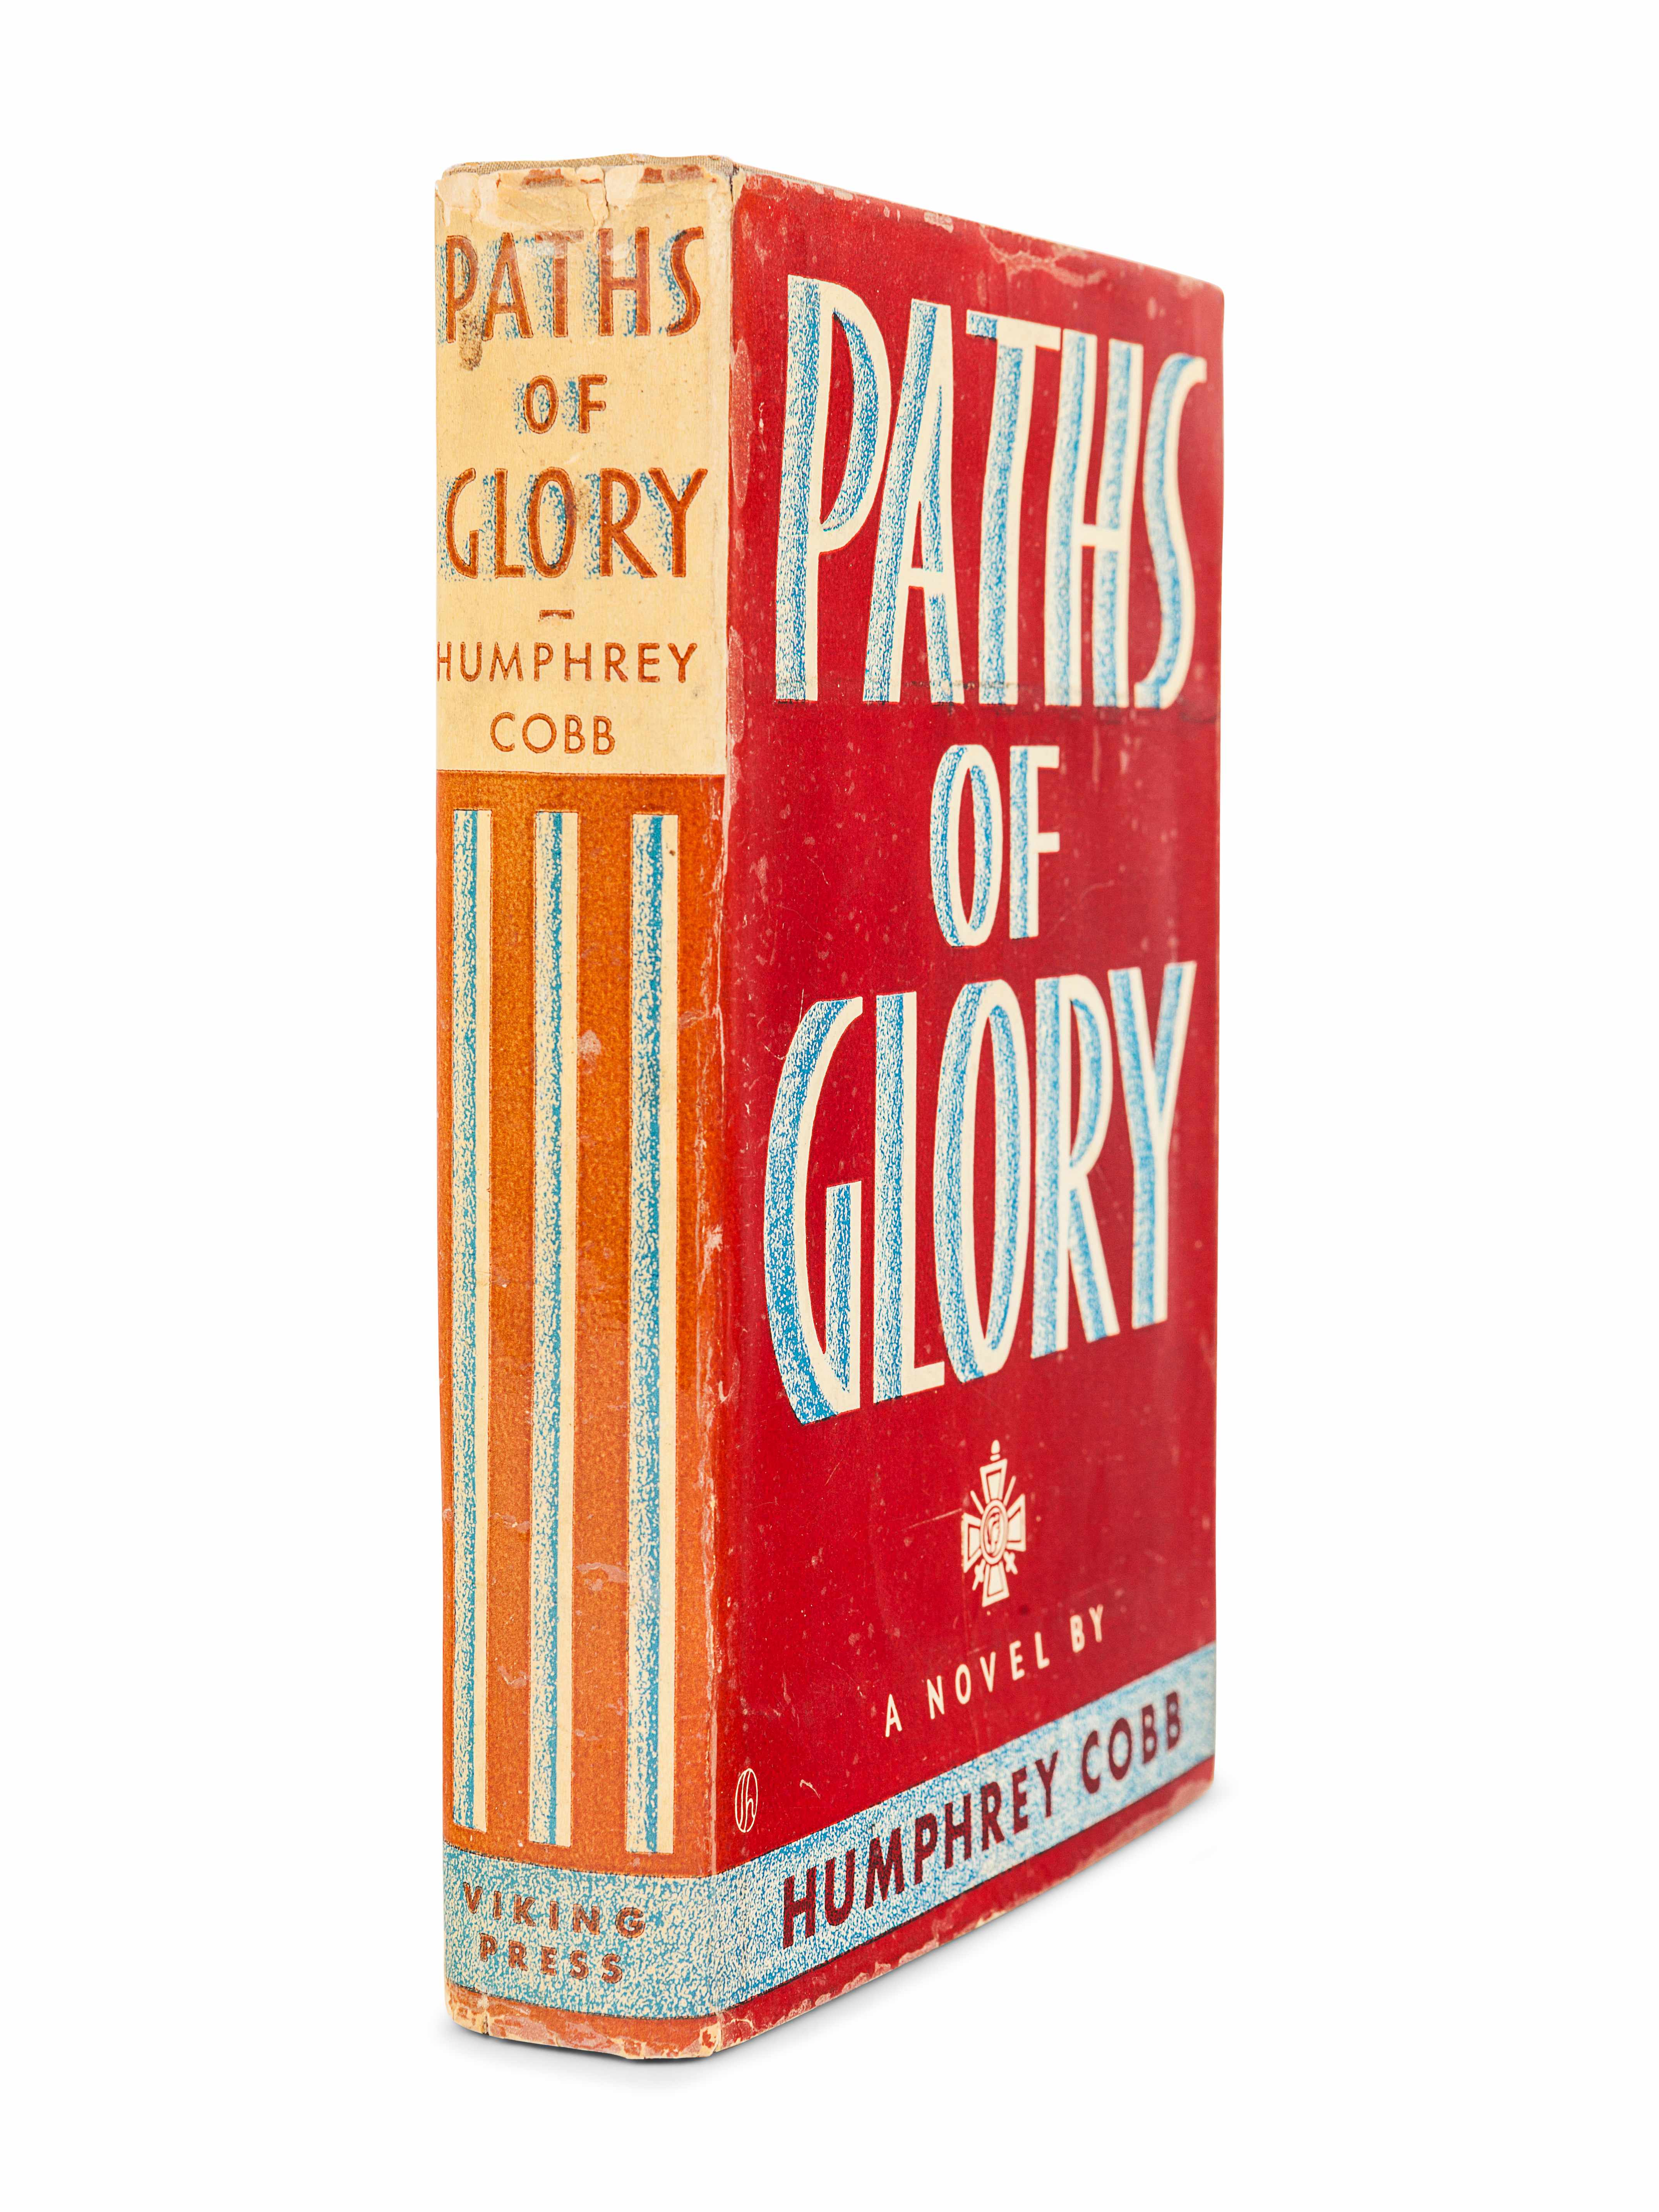 COBB, Humphrey (1899-1944). Paths of Glory. New York: The Viking Press, 1935. - Image 2 of 2